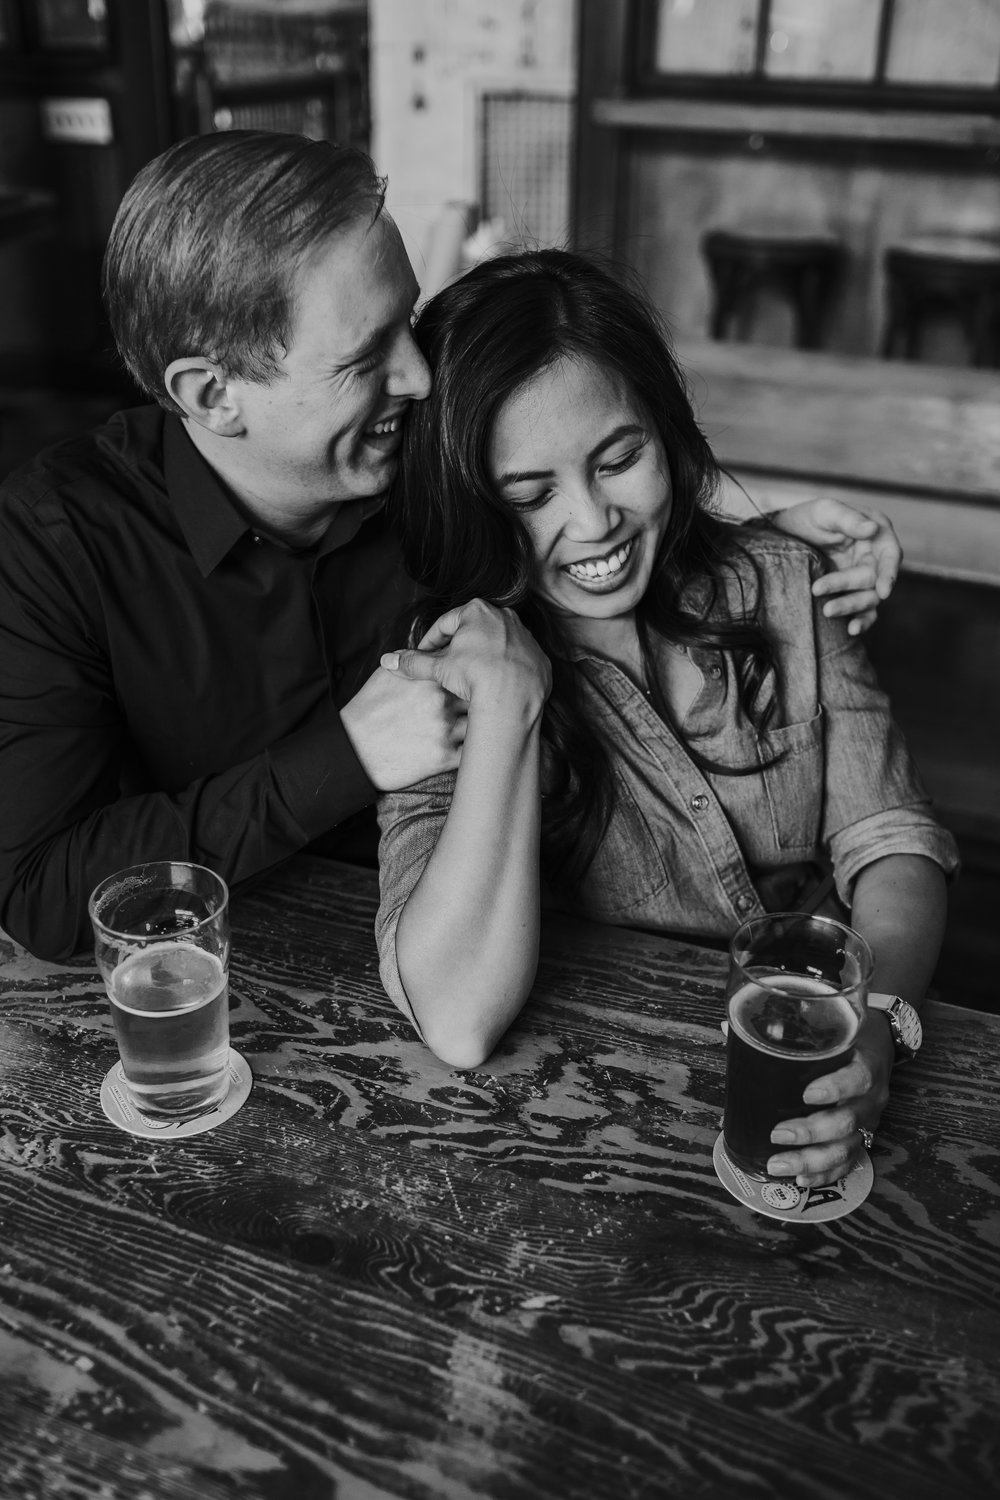 Penney and Chad San Francisco Engagament Session Brewery Mission Dolores_-9.jpg